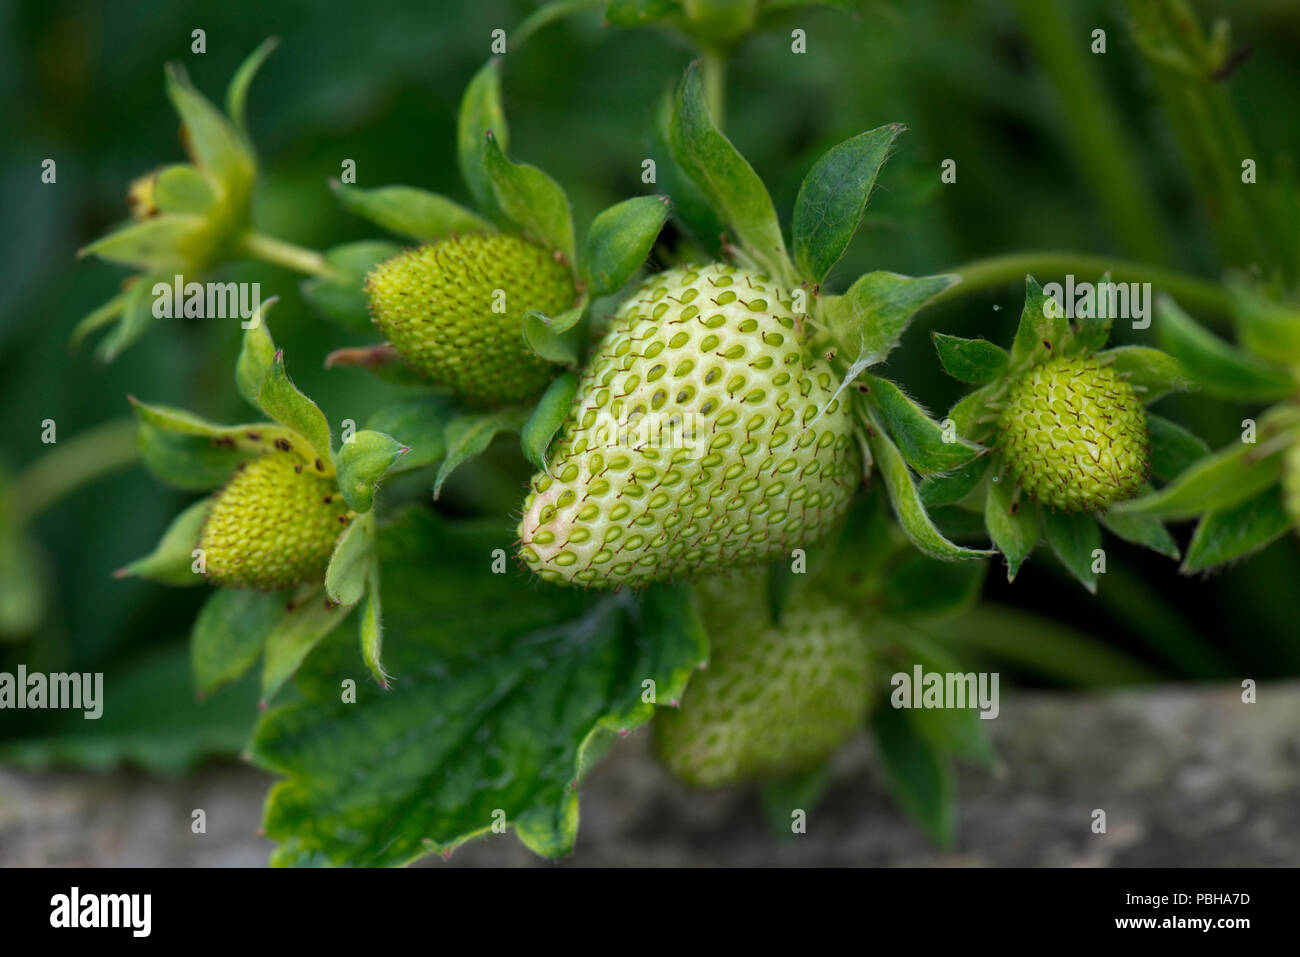 Green, unripe strawberry fruits, Fragaria x ananassa, aggregate accessory fruit with external achenes, Berkshire, May - Stock Image